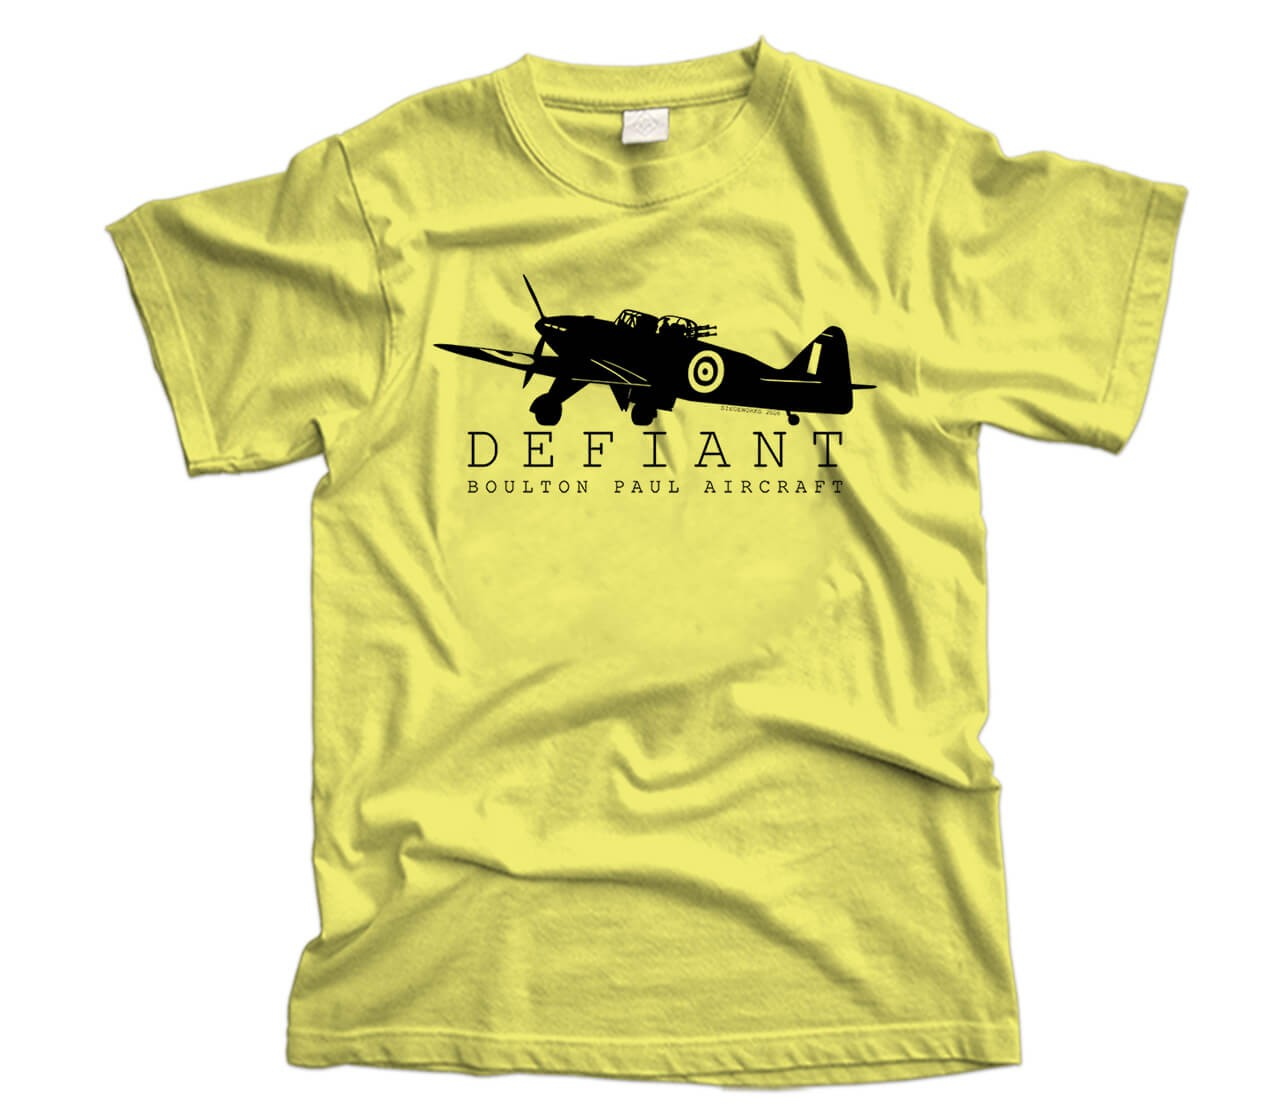 Boulton Paul Defiant Aircraft T-Shirt